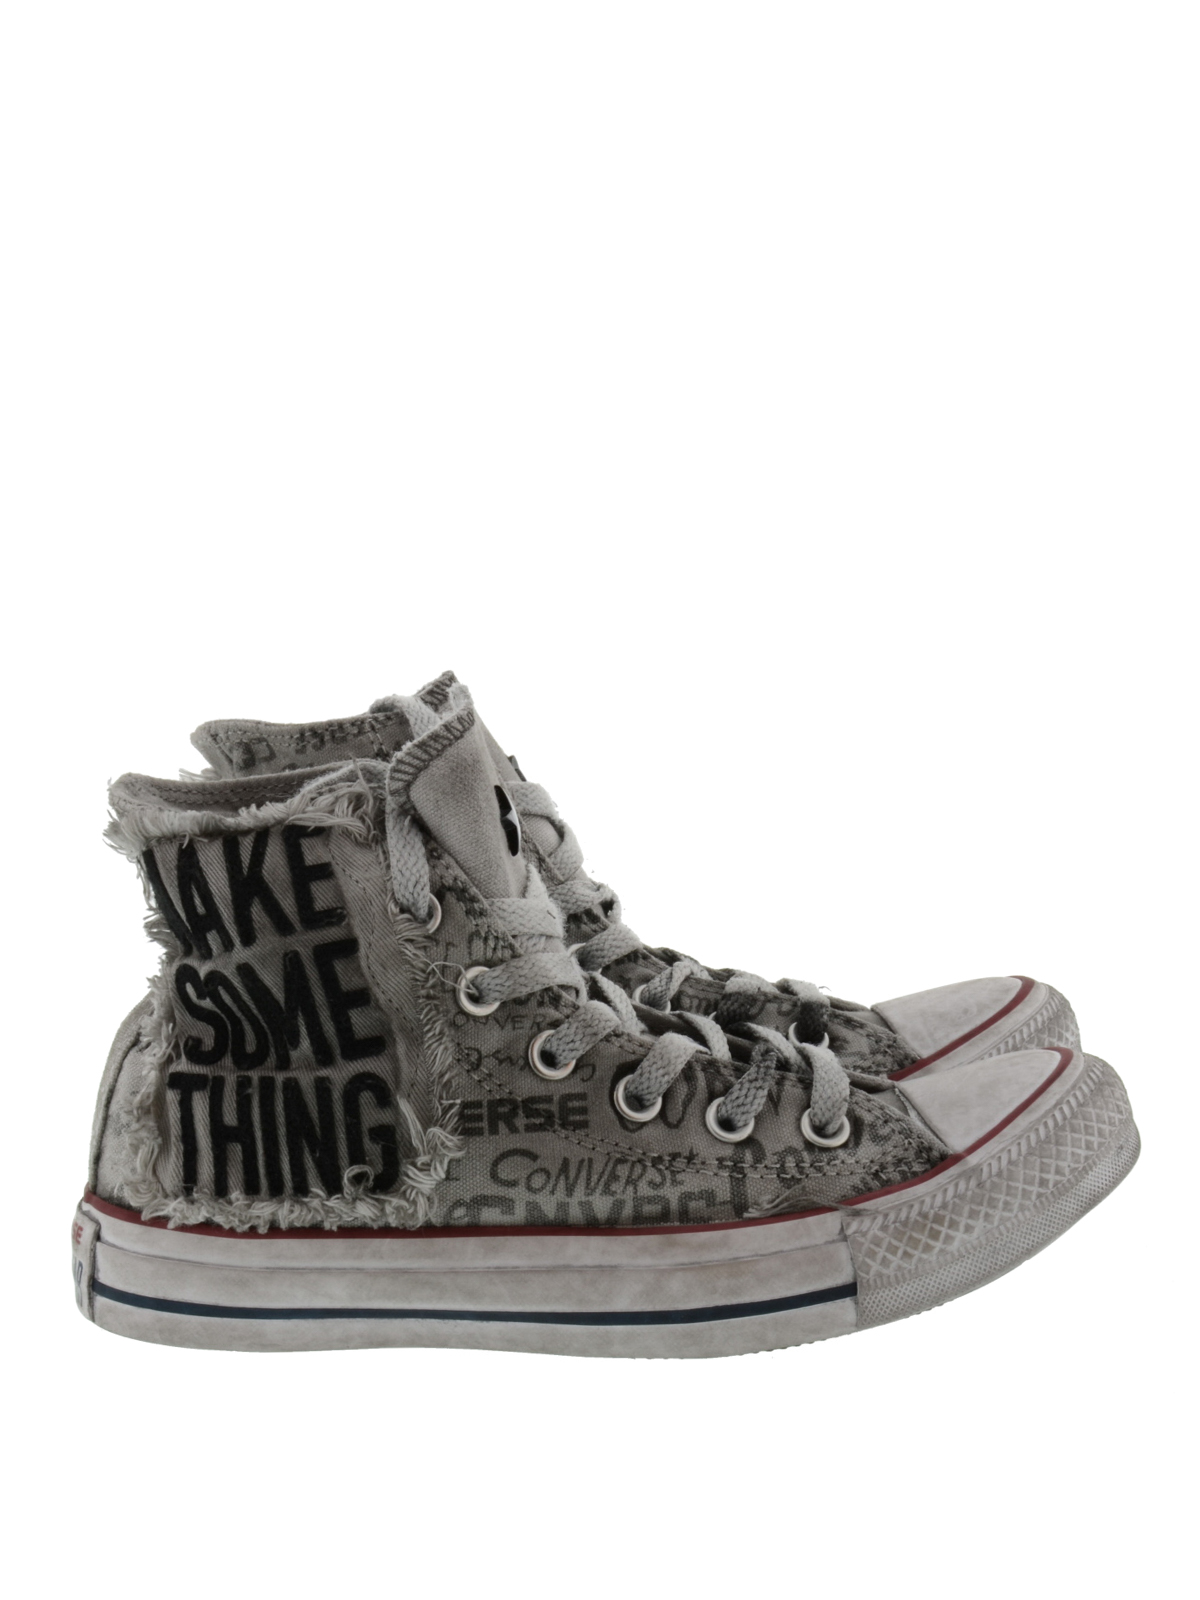 a39396702714 CONVERSE LIMITED EDITION  trainers online - Take Something vintage sneakers